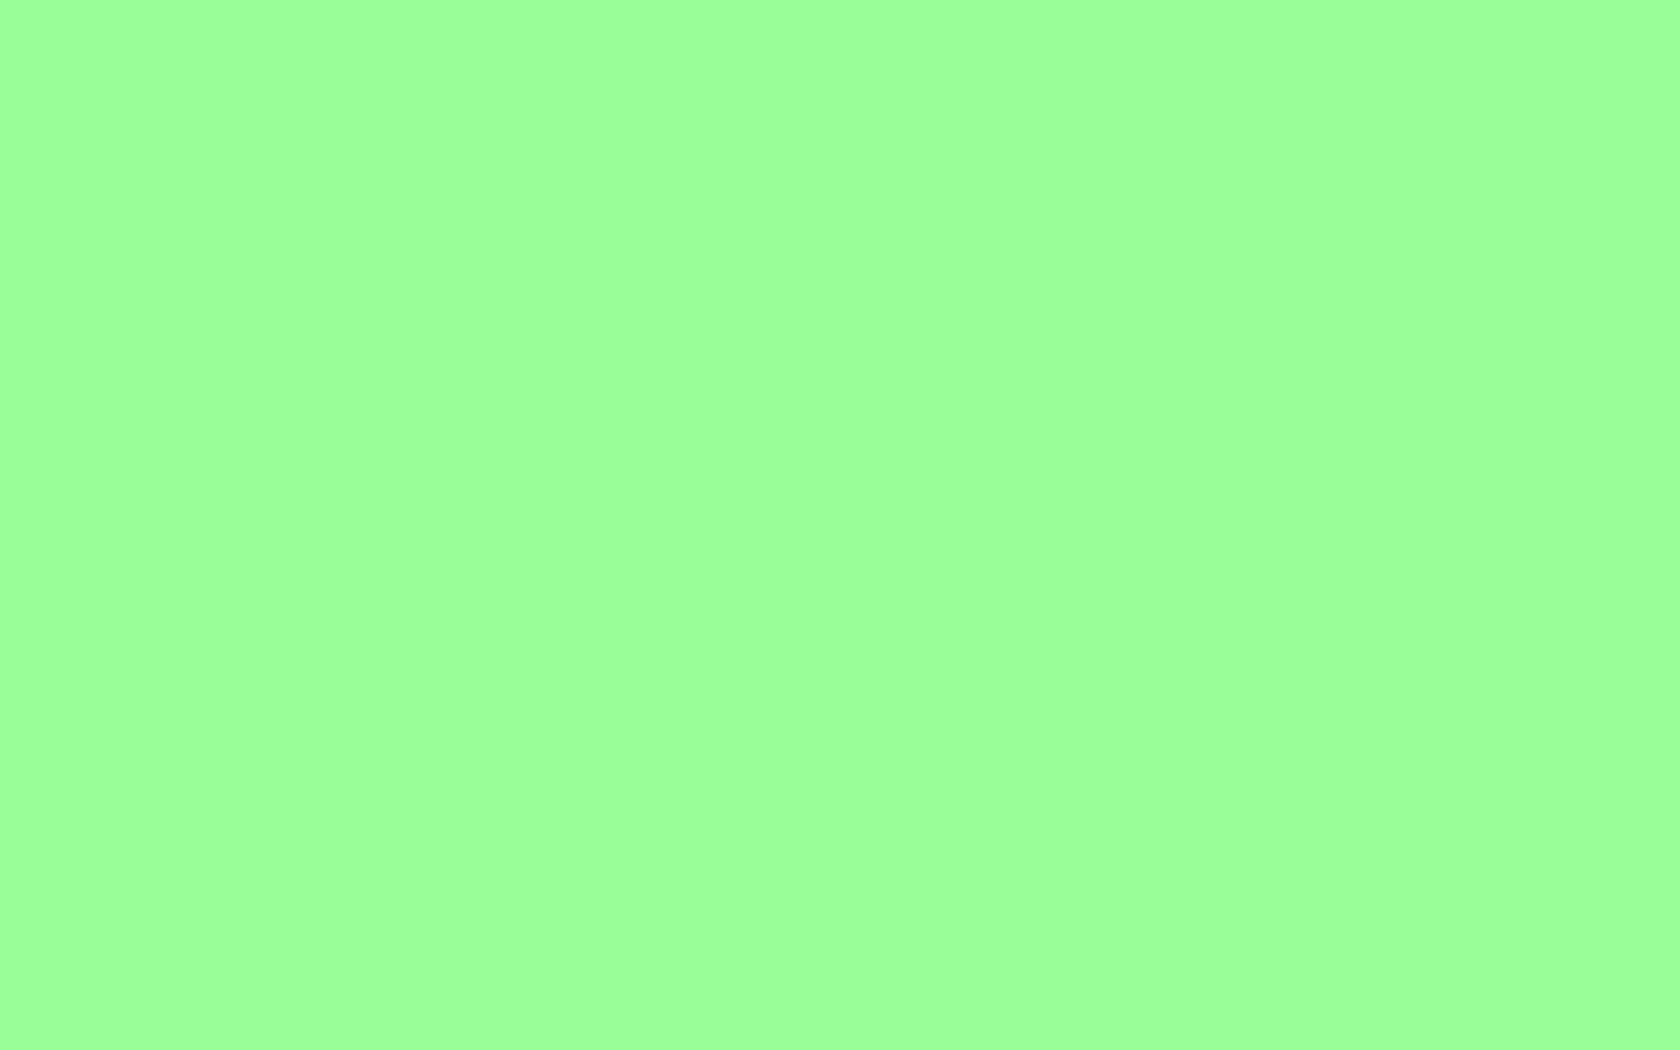 1680x1050 resolution Mint Green solid color background view and 1680x1050